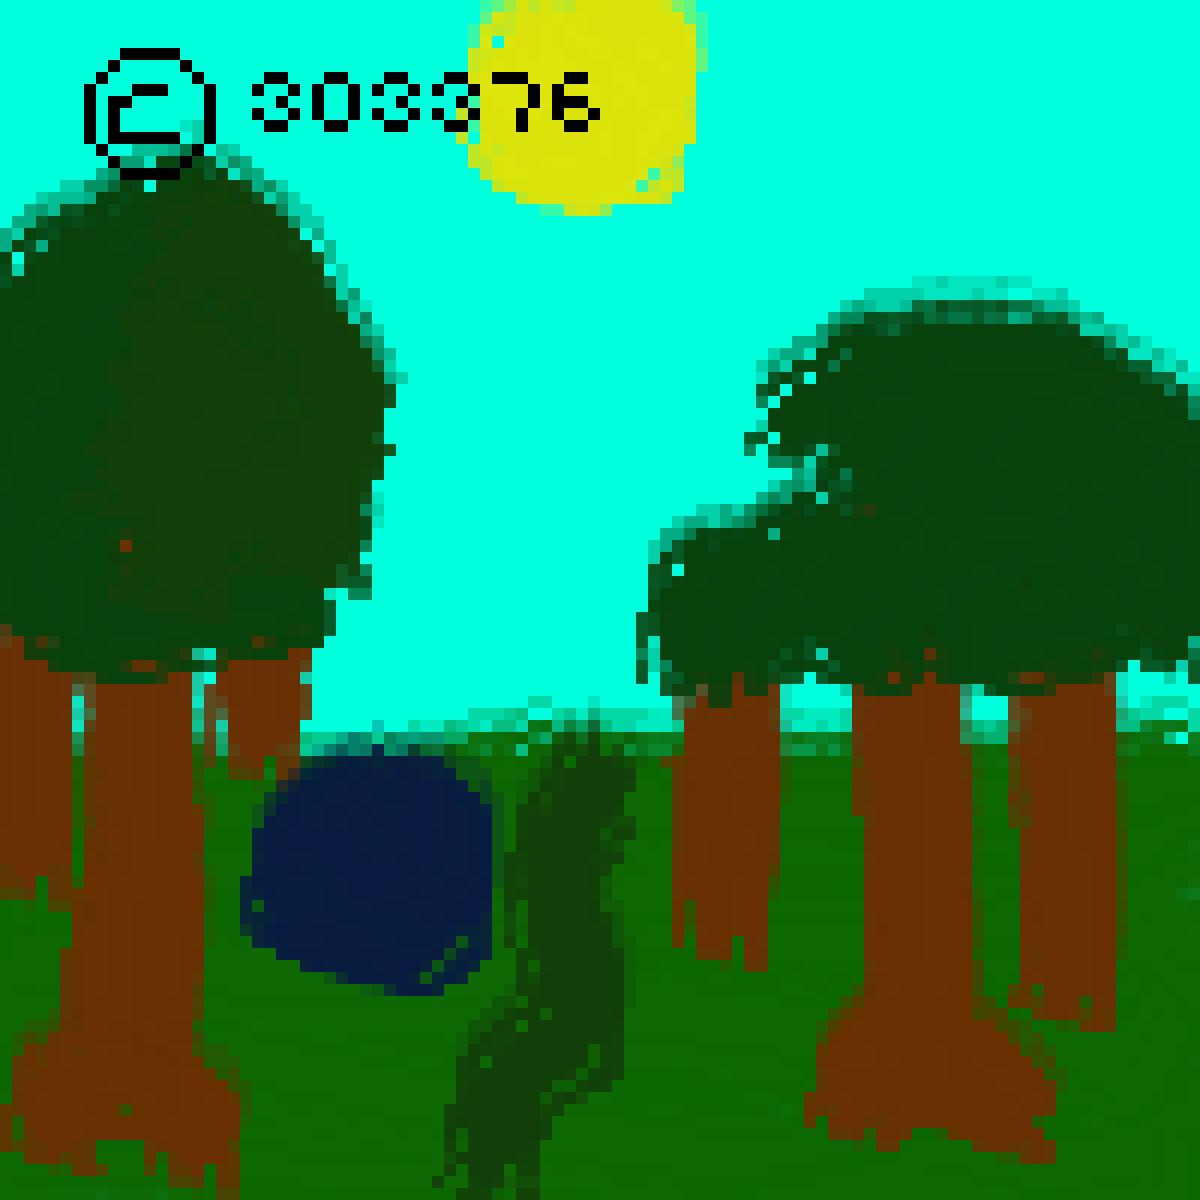 a quiet forest scene